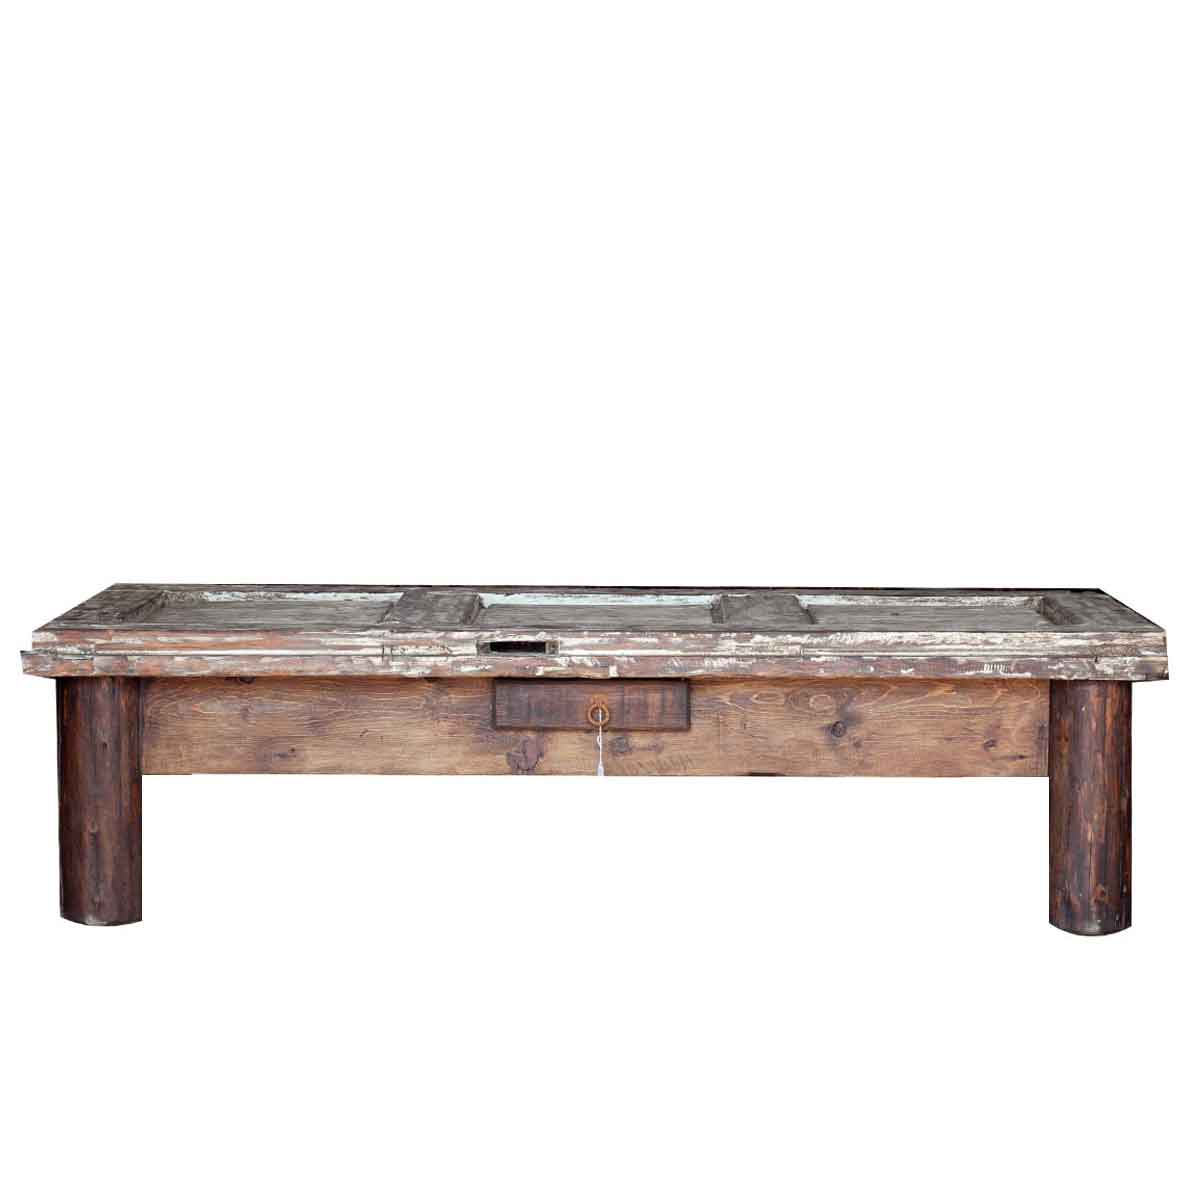 Tables Rustic Coffee Tables Reclaimed Barn Wood Coffee Table